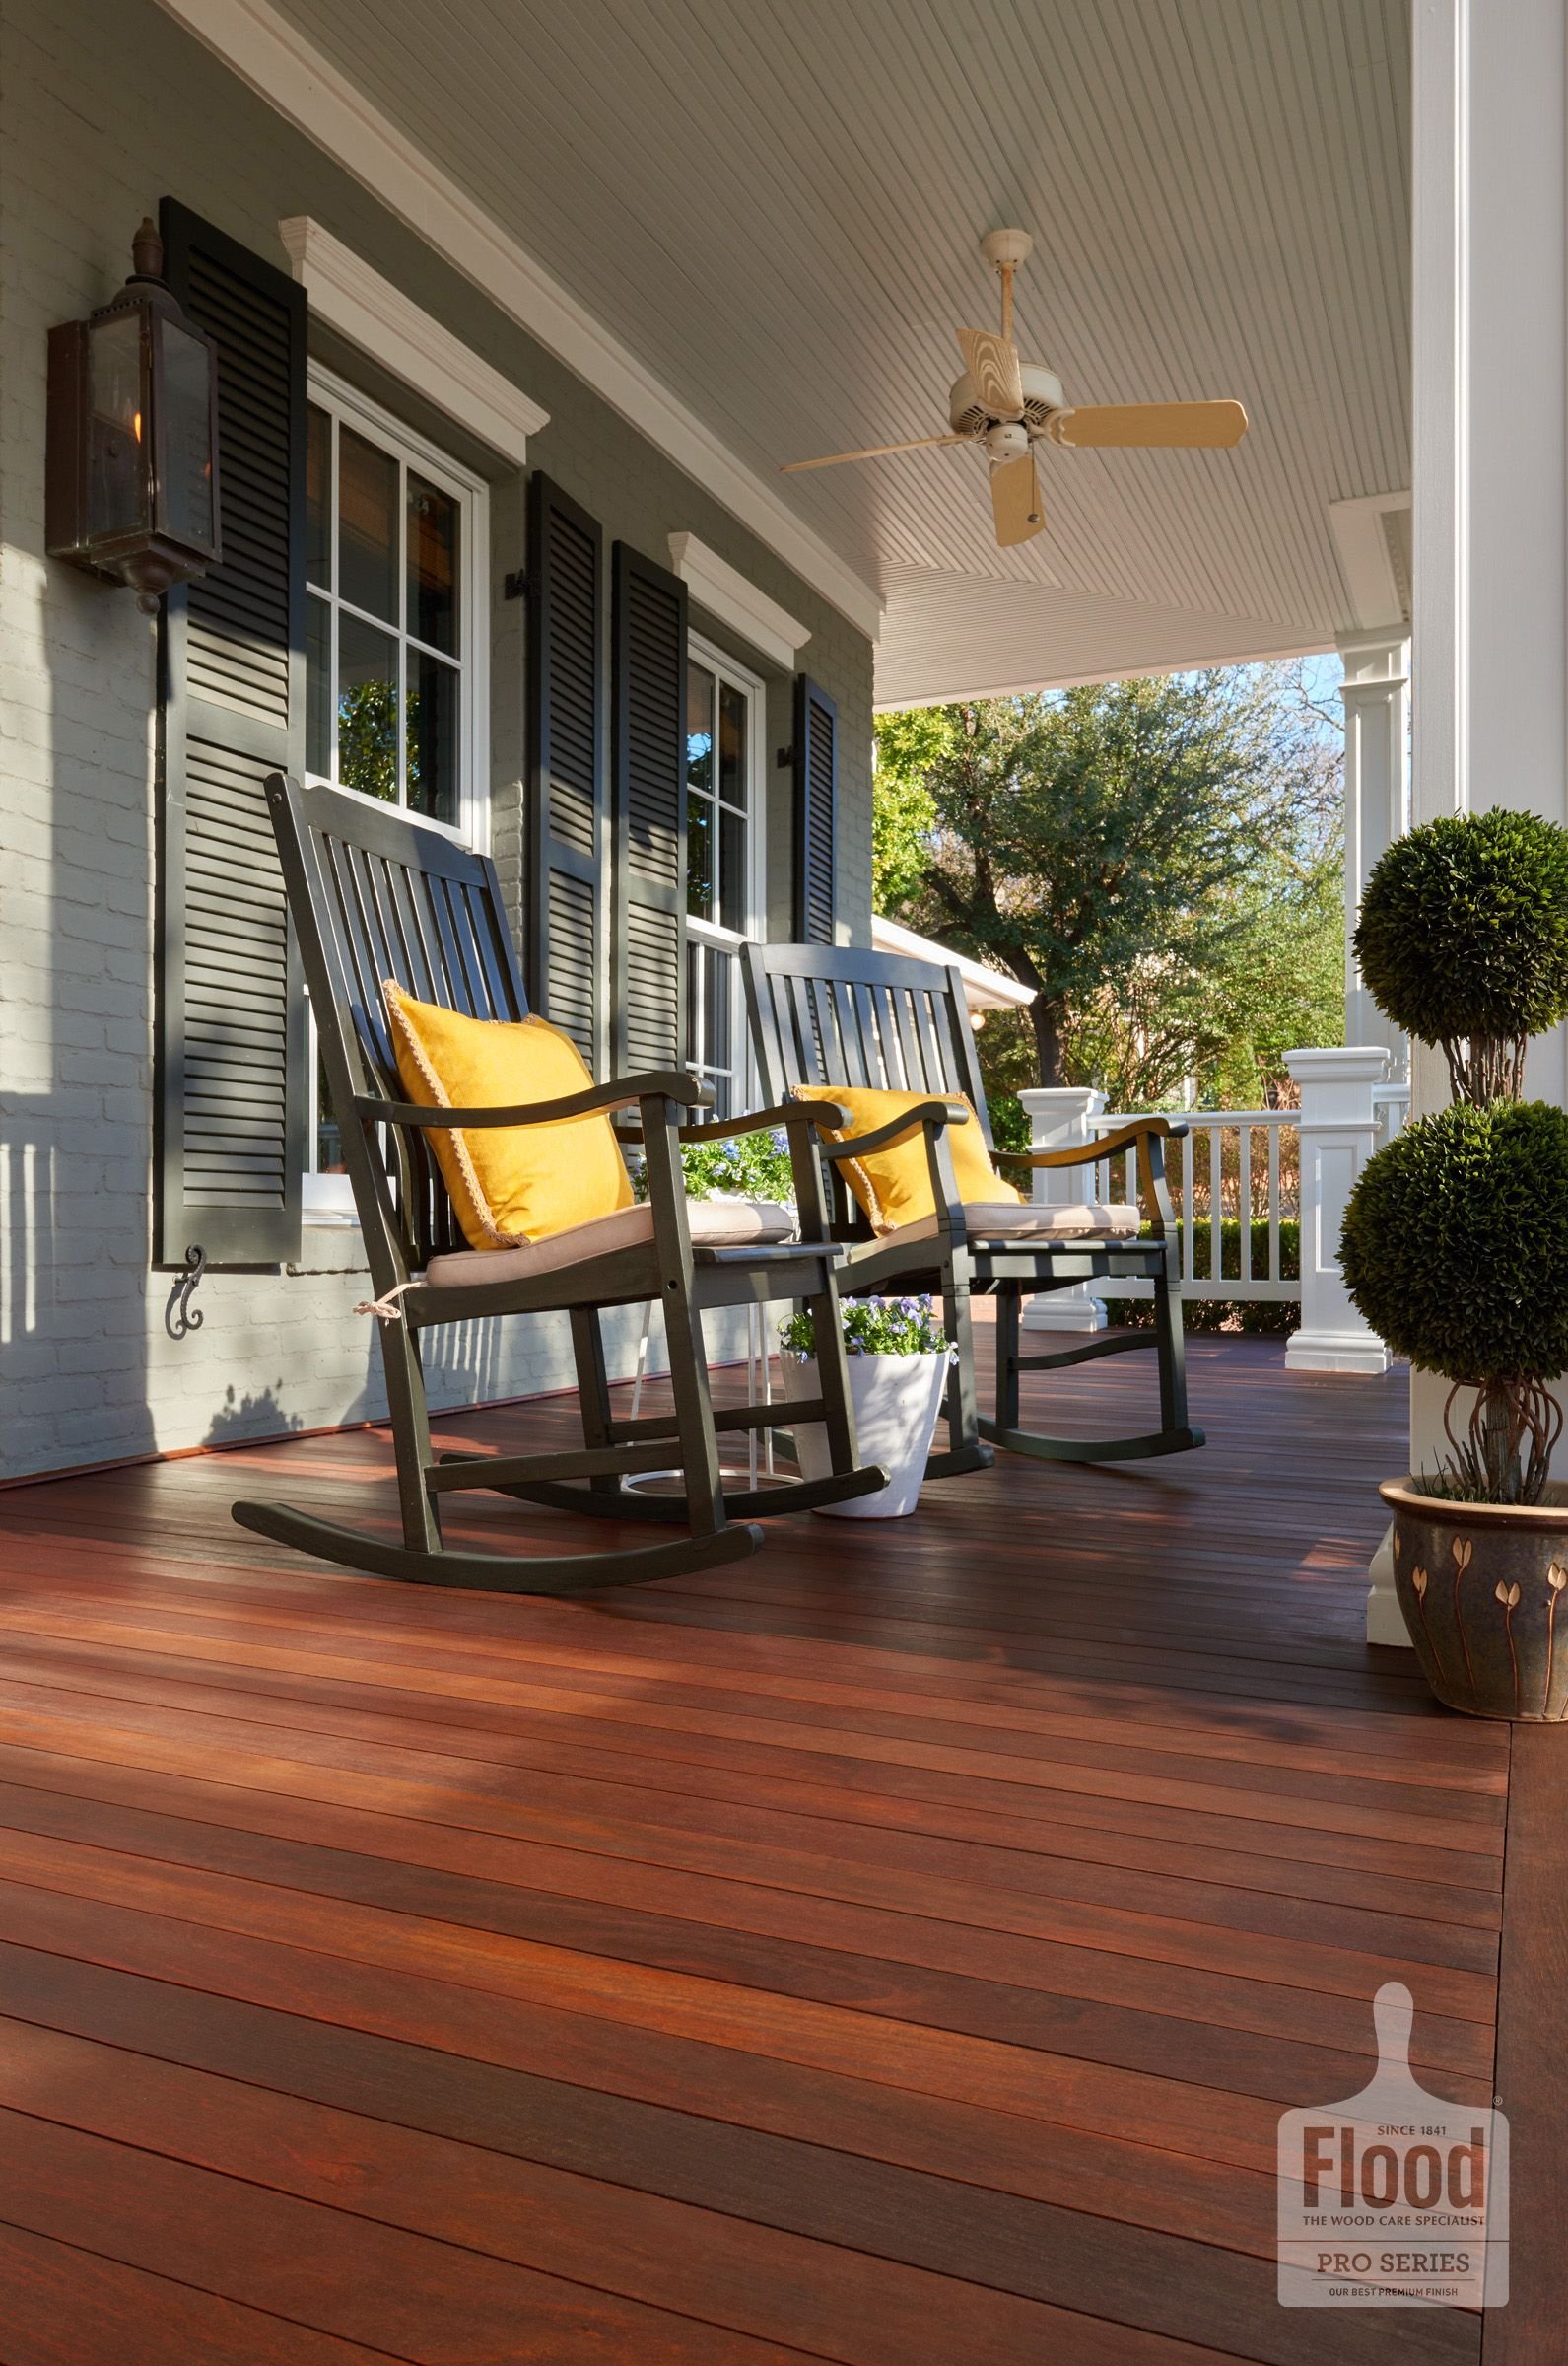 Flood Pro Series Semi Transparent Wood Stain In Rosewood Protects This Covered Patio With A Beautiful Finish Ww Wood Deck Stain Staining Deck Staining Wood